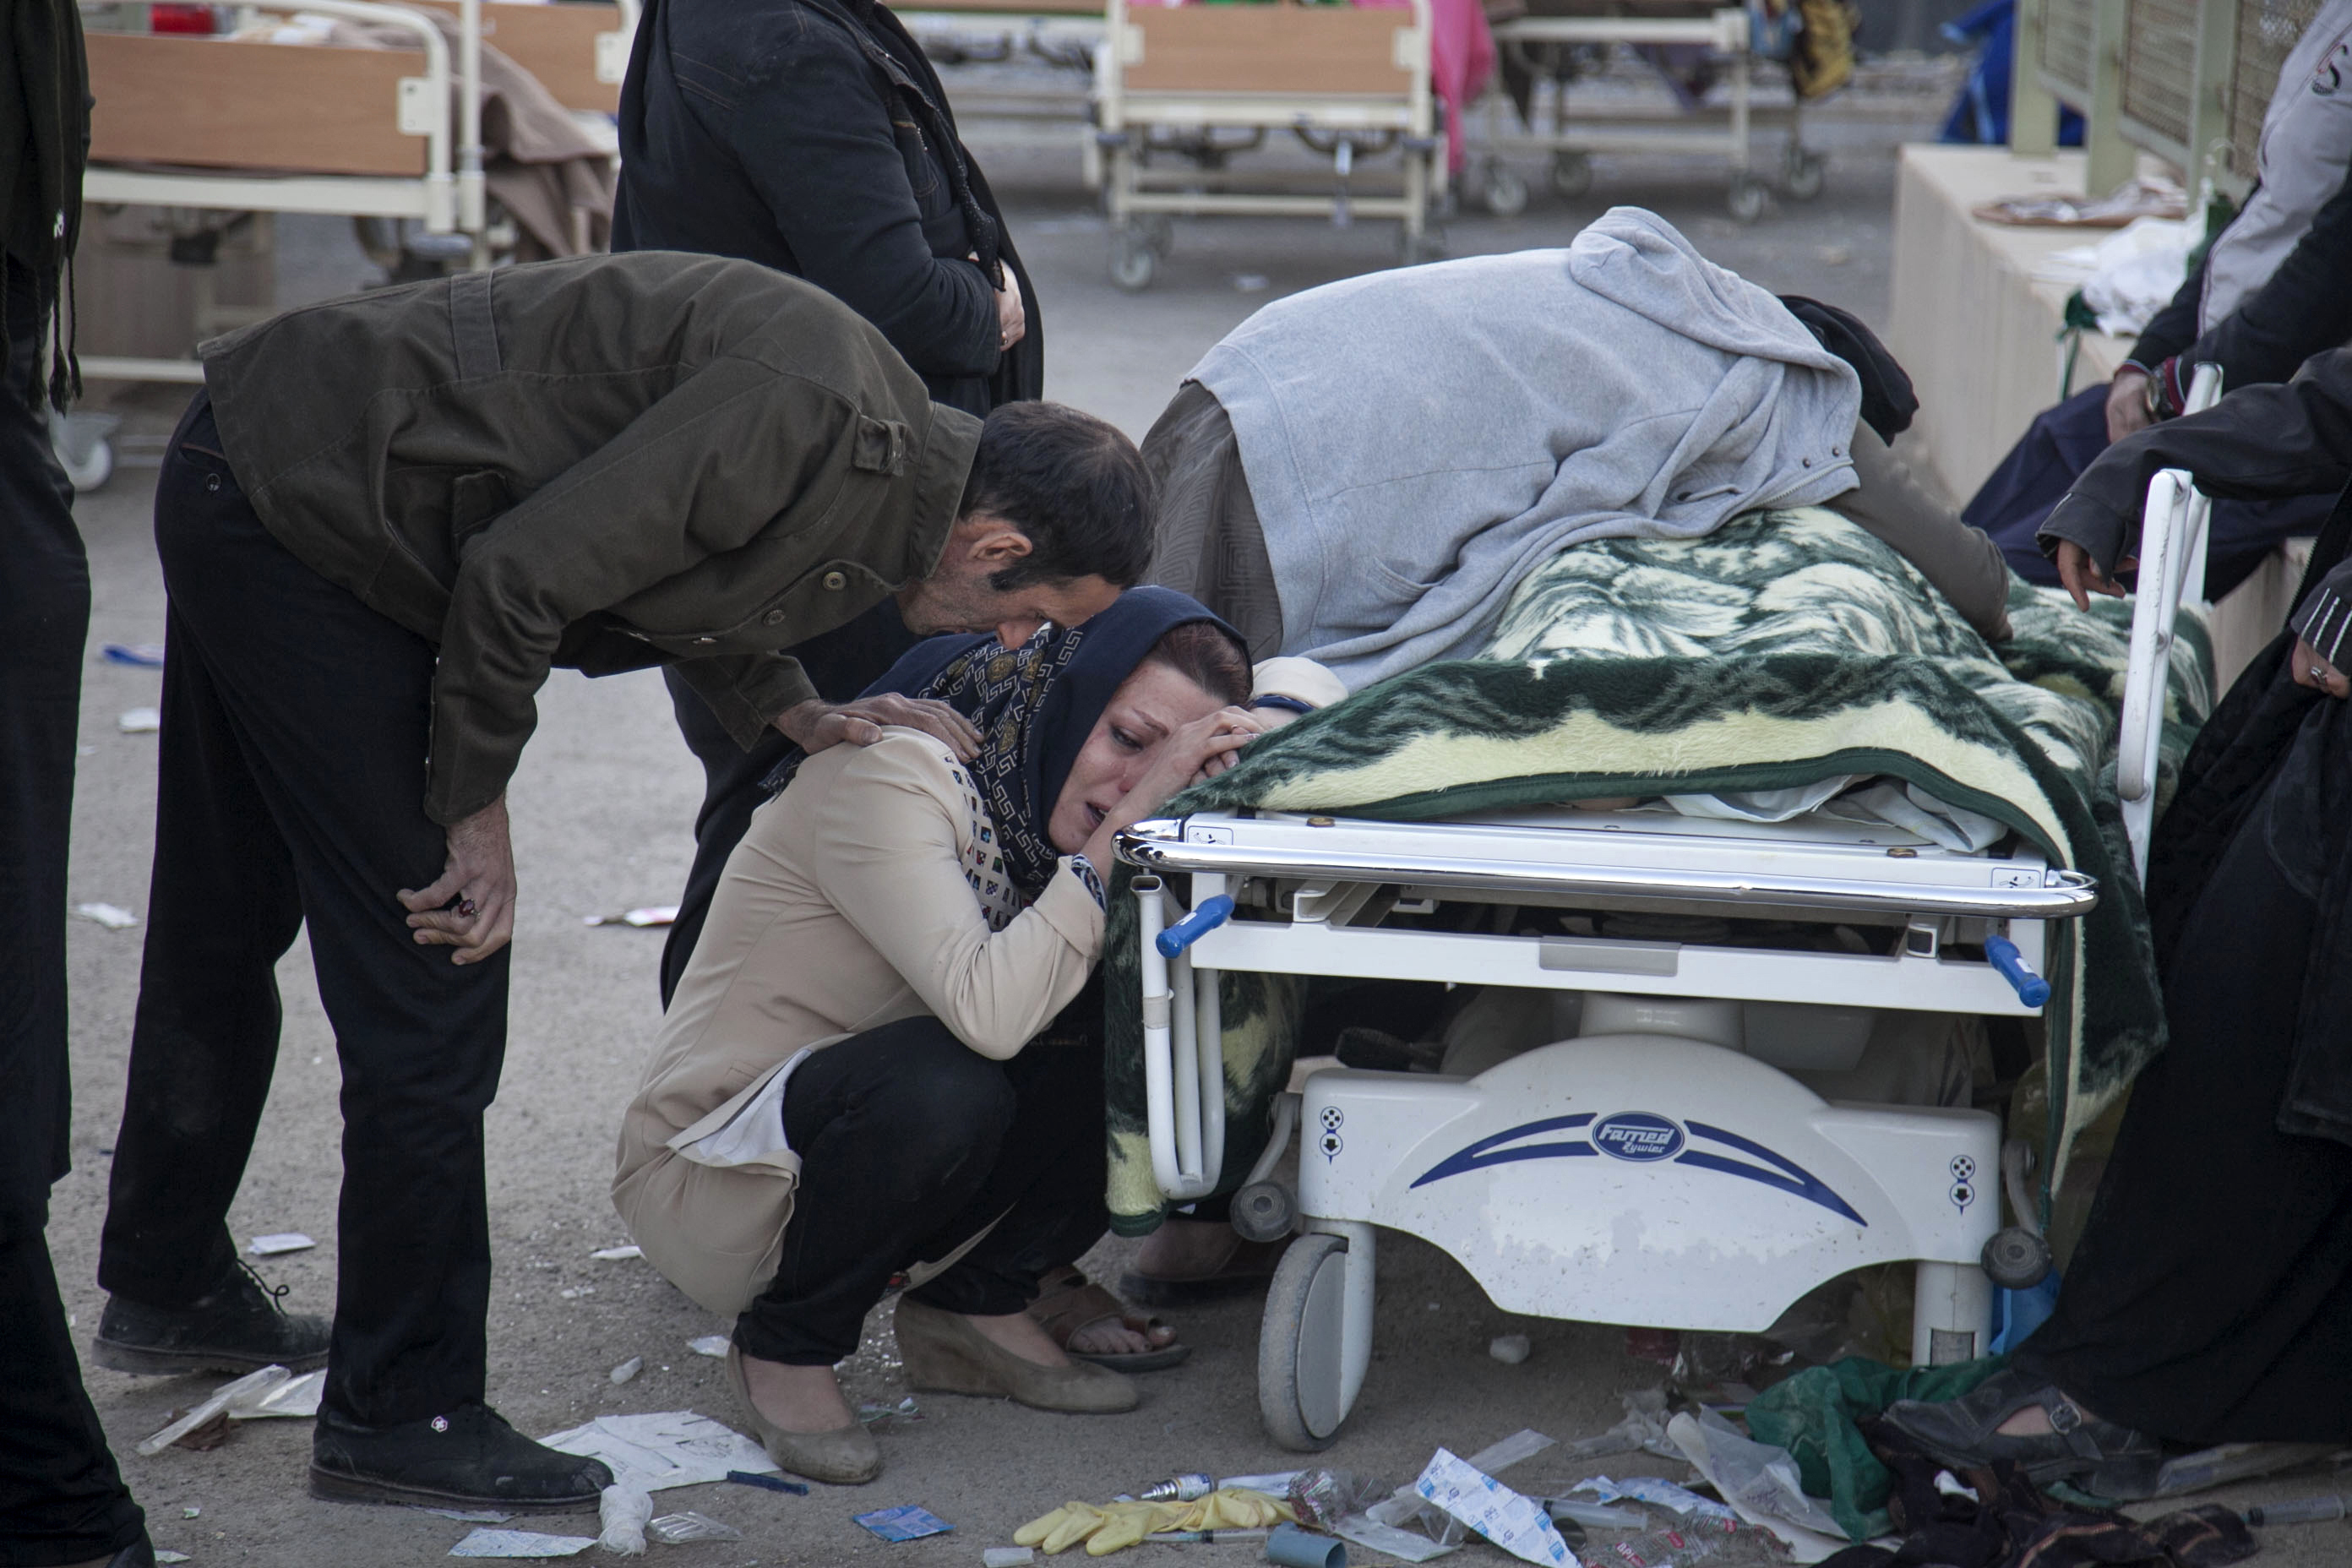 <div class='meta'><div class='origin-logo' data-origin='none'></div><span class='caption-text' data-credit='Farzad Menati/Tasnim News Agency via AP'>In this photo provided by Tasnim News Agency, relatives weep over the body of an earthquake victim,  in Sarpol-e-Zahab, western Iran, Monday, Nov. 13, 2017.</span></div>